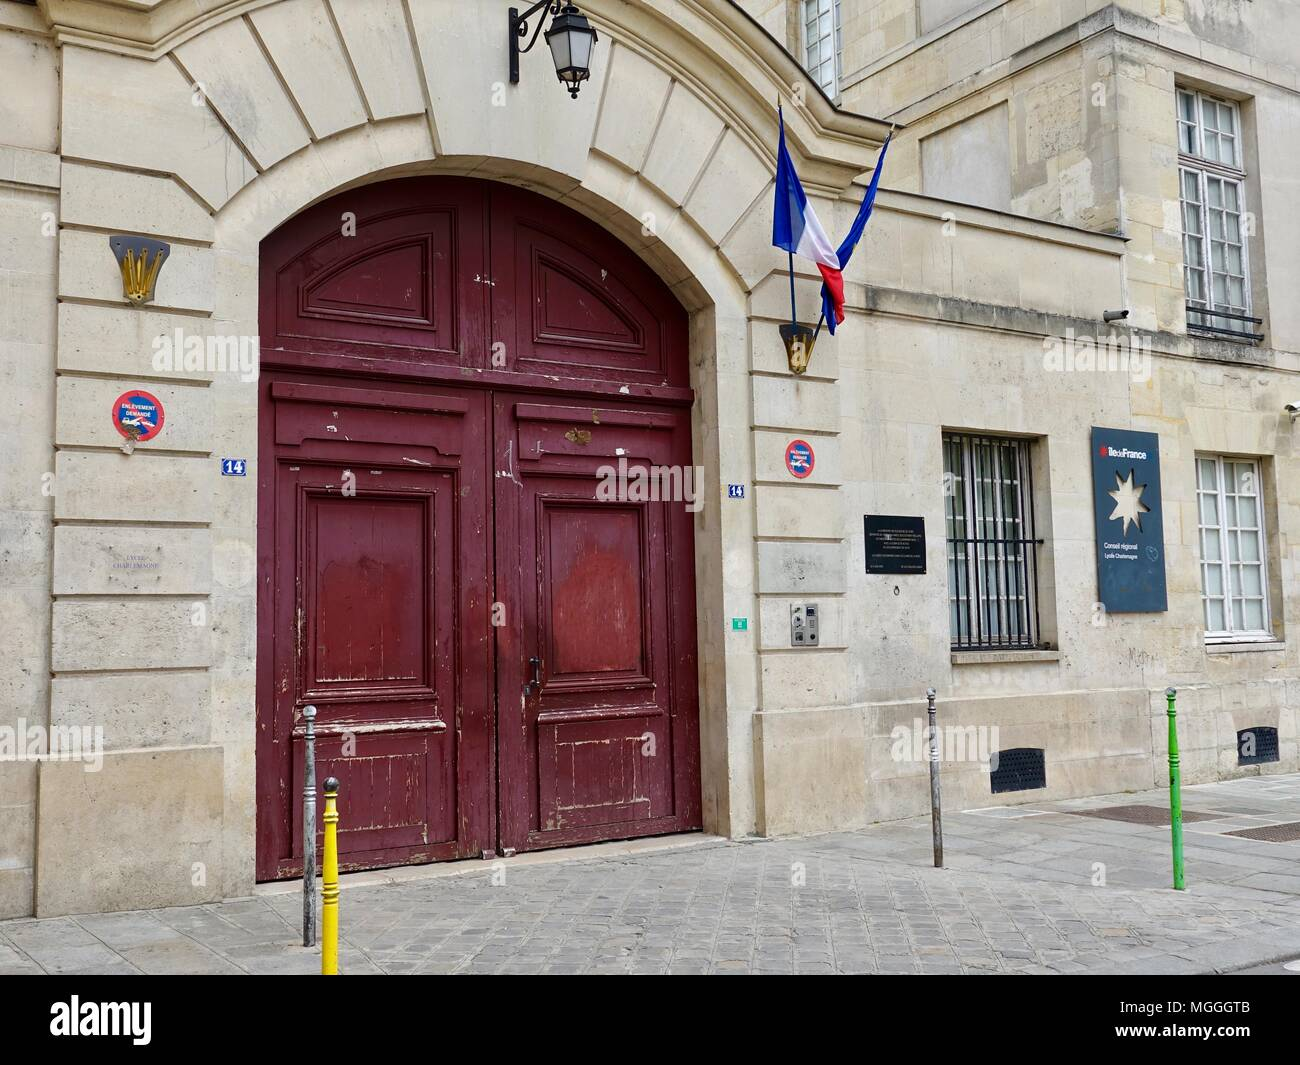 Red doors of the Lycée Charlemagne (French high school), located in the Marais, Paris, France. - Stock Image